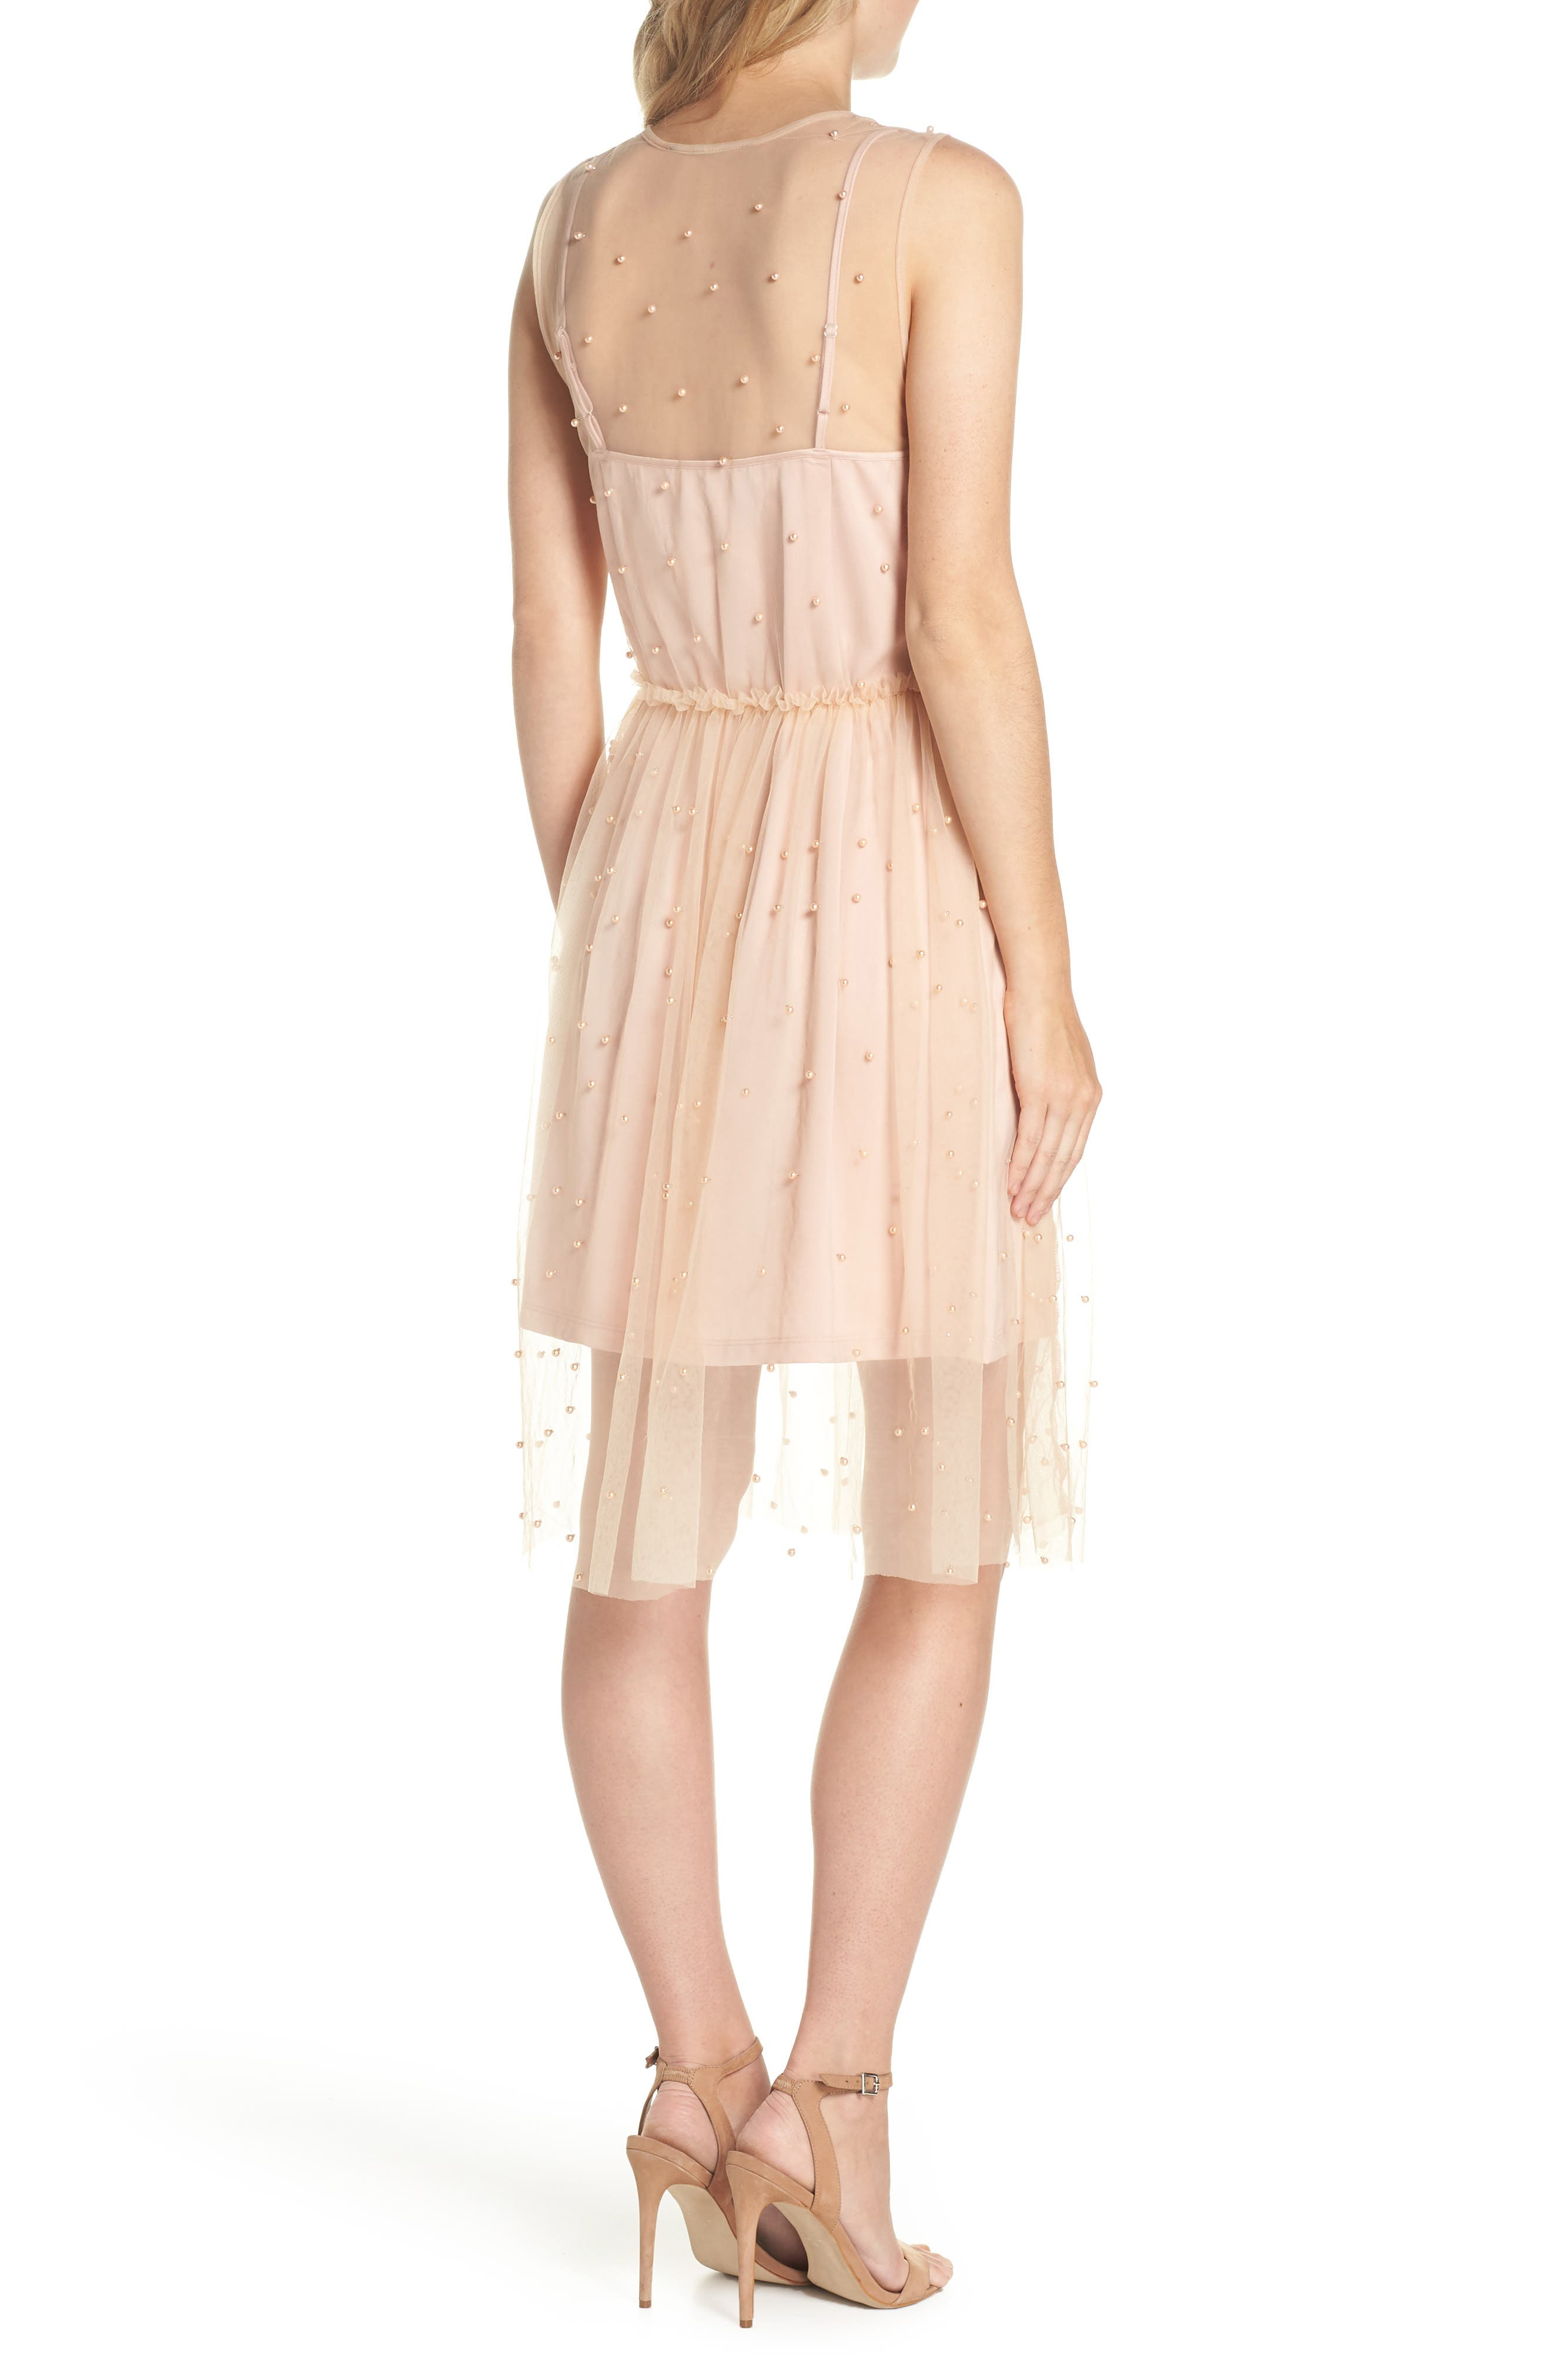 FOREST LILY,                             Imitation Pearl & Tulle Dress,                             Alternate thumbnail 2, color,                             680